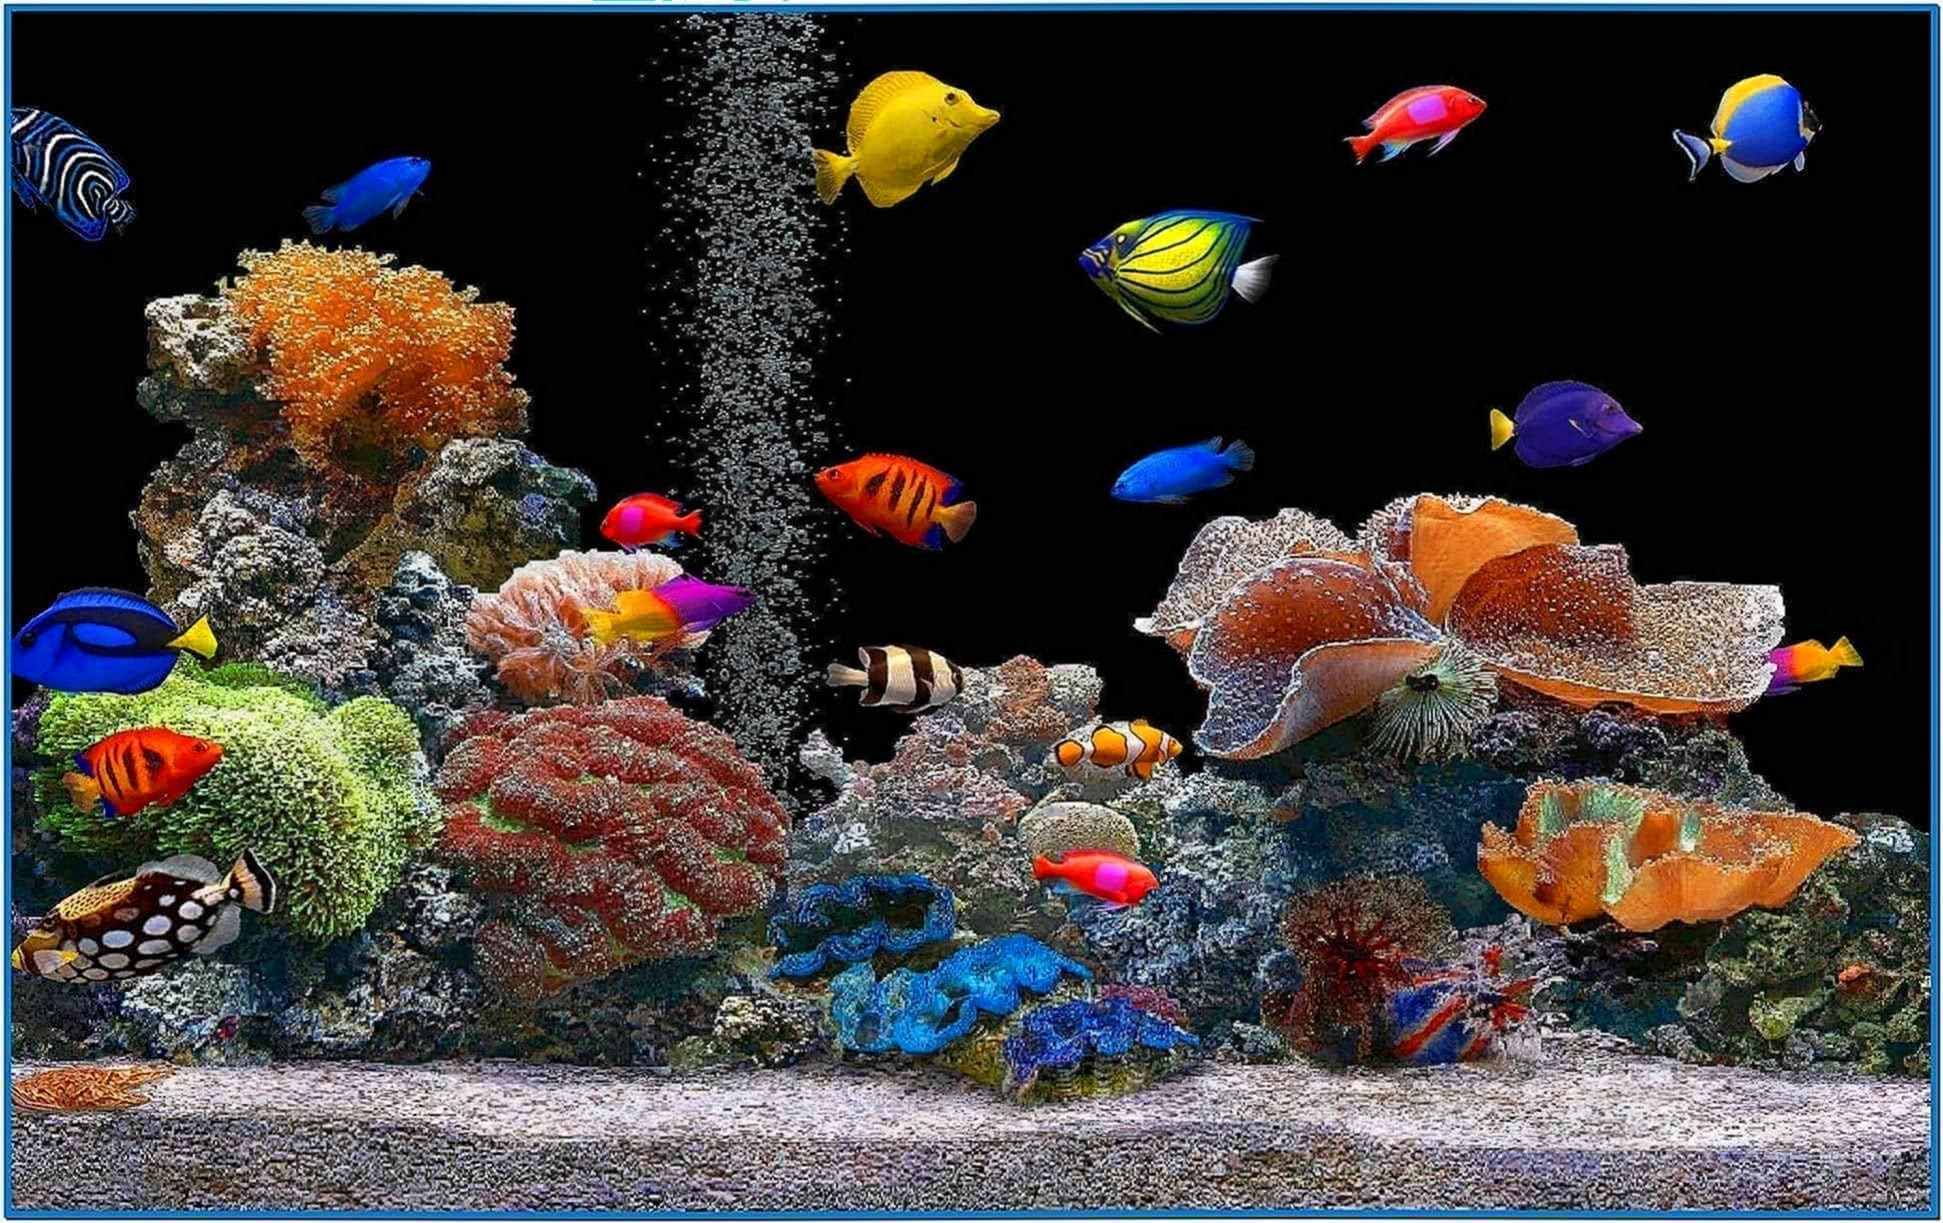 Full HD Screensaver Aquarium